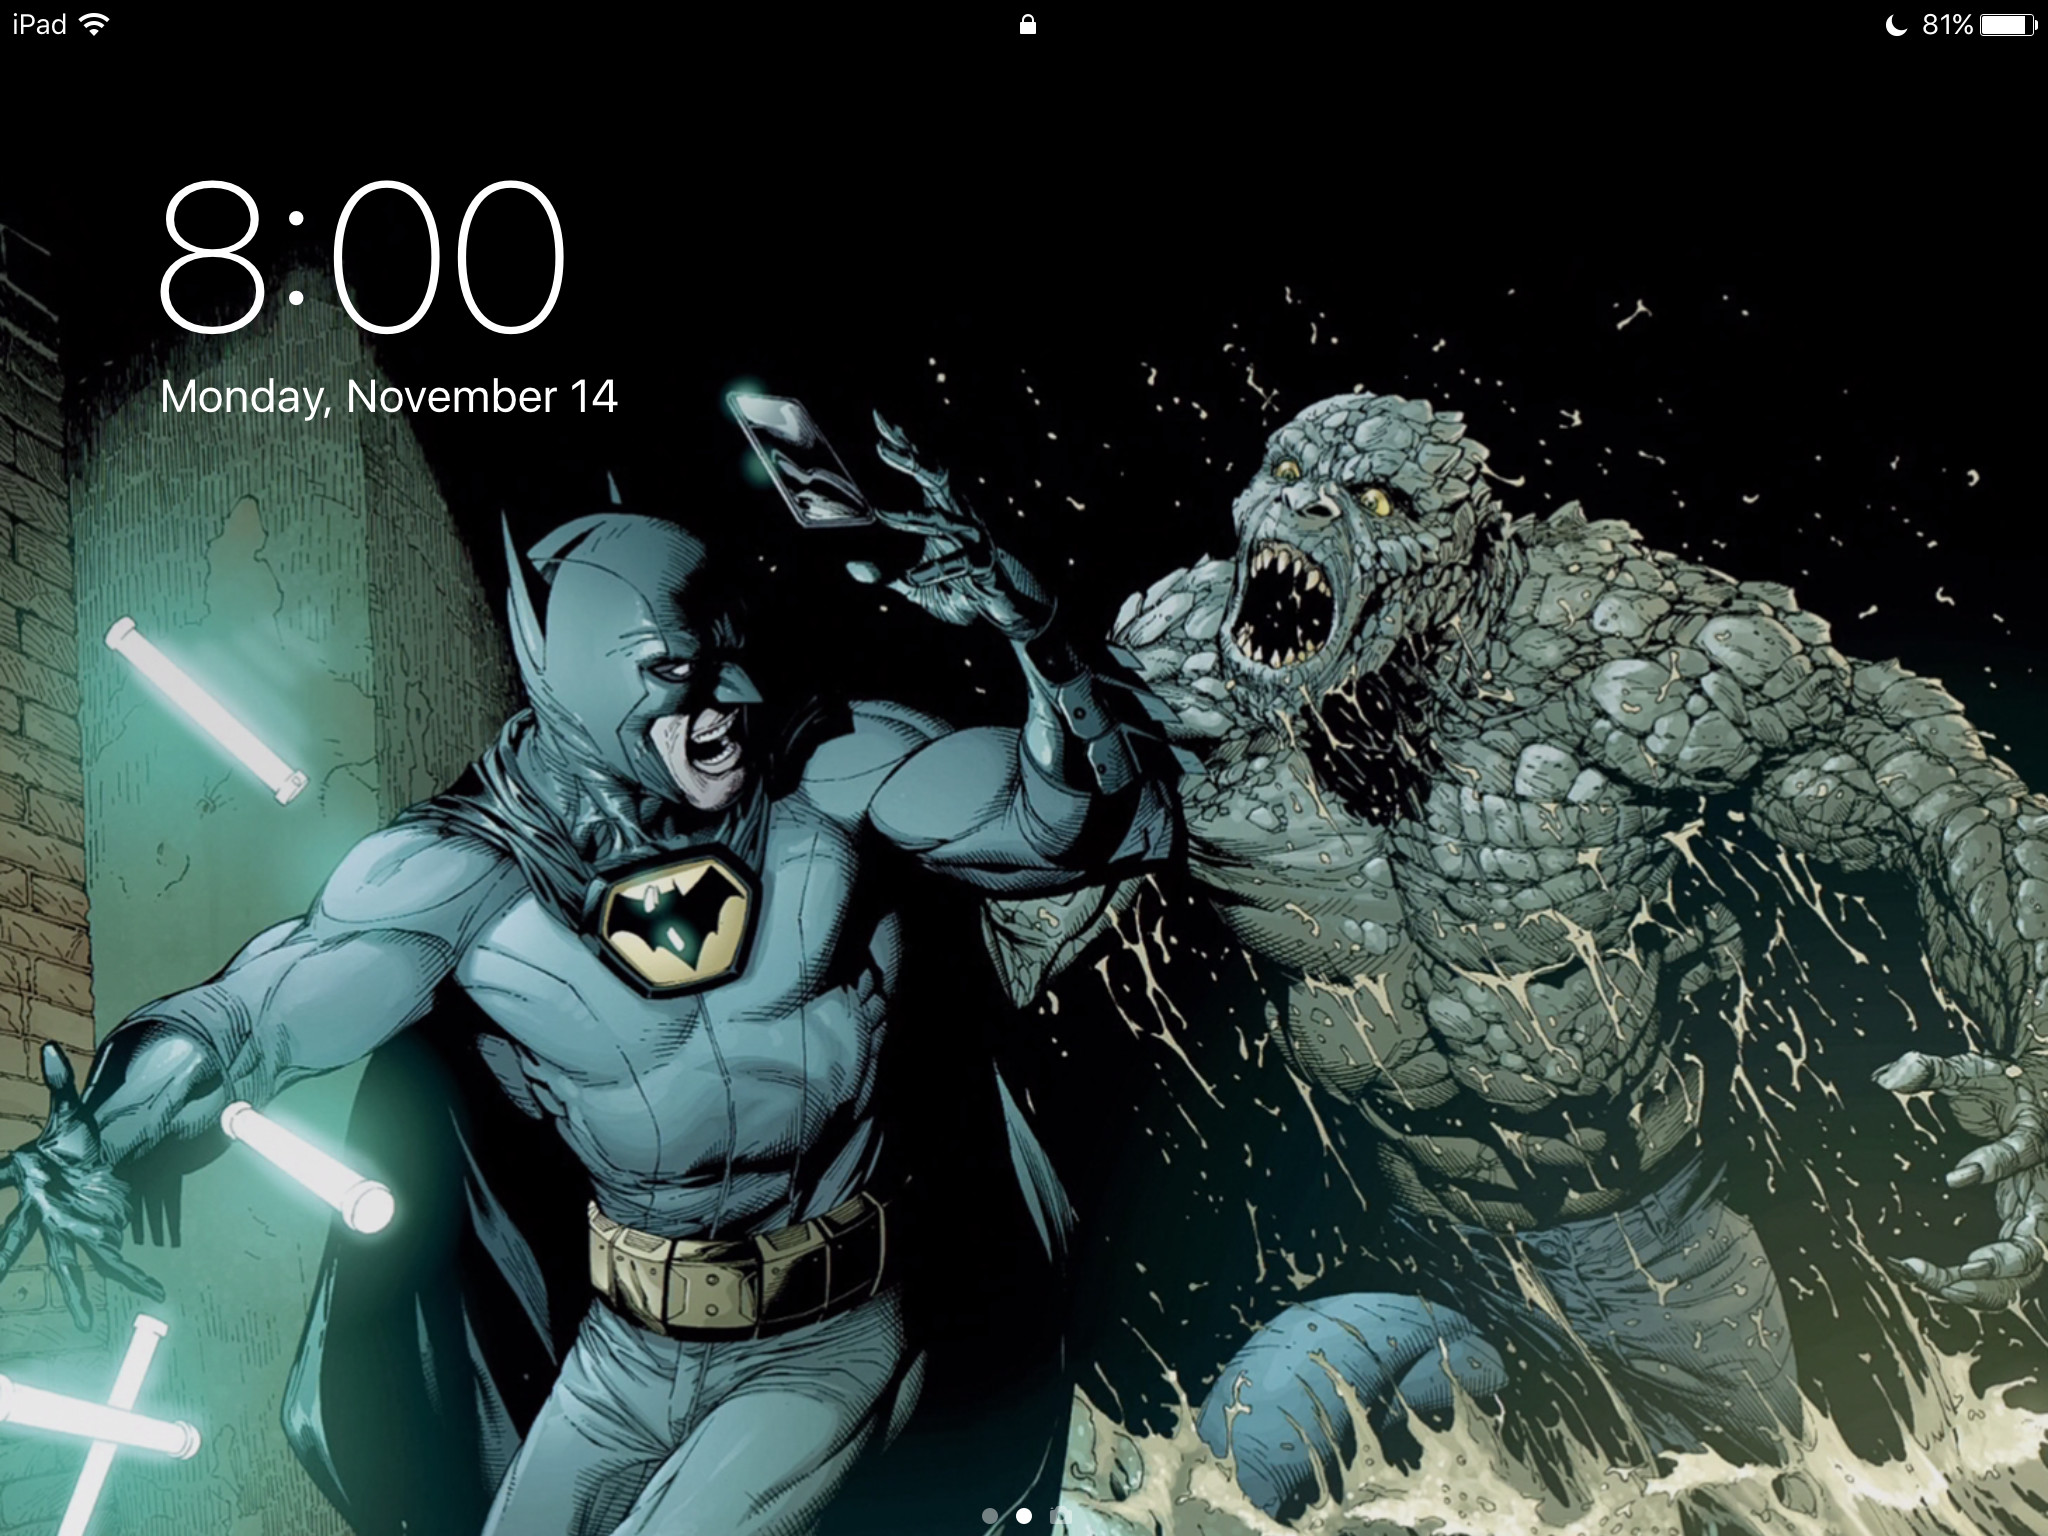 Wallpaper thread anyone? Post your DC related wallpapers!